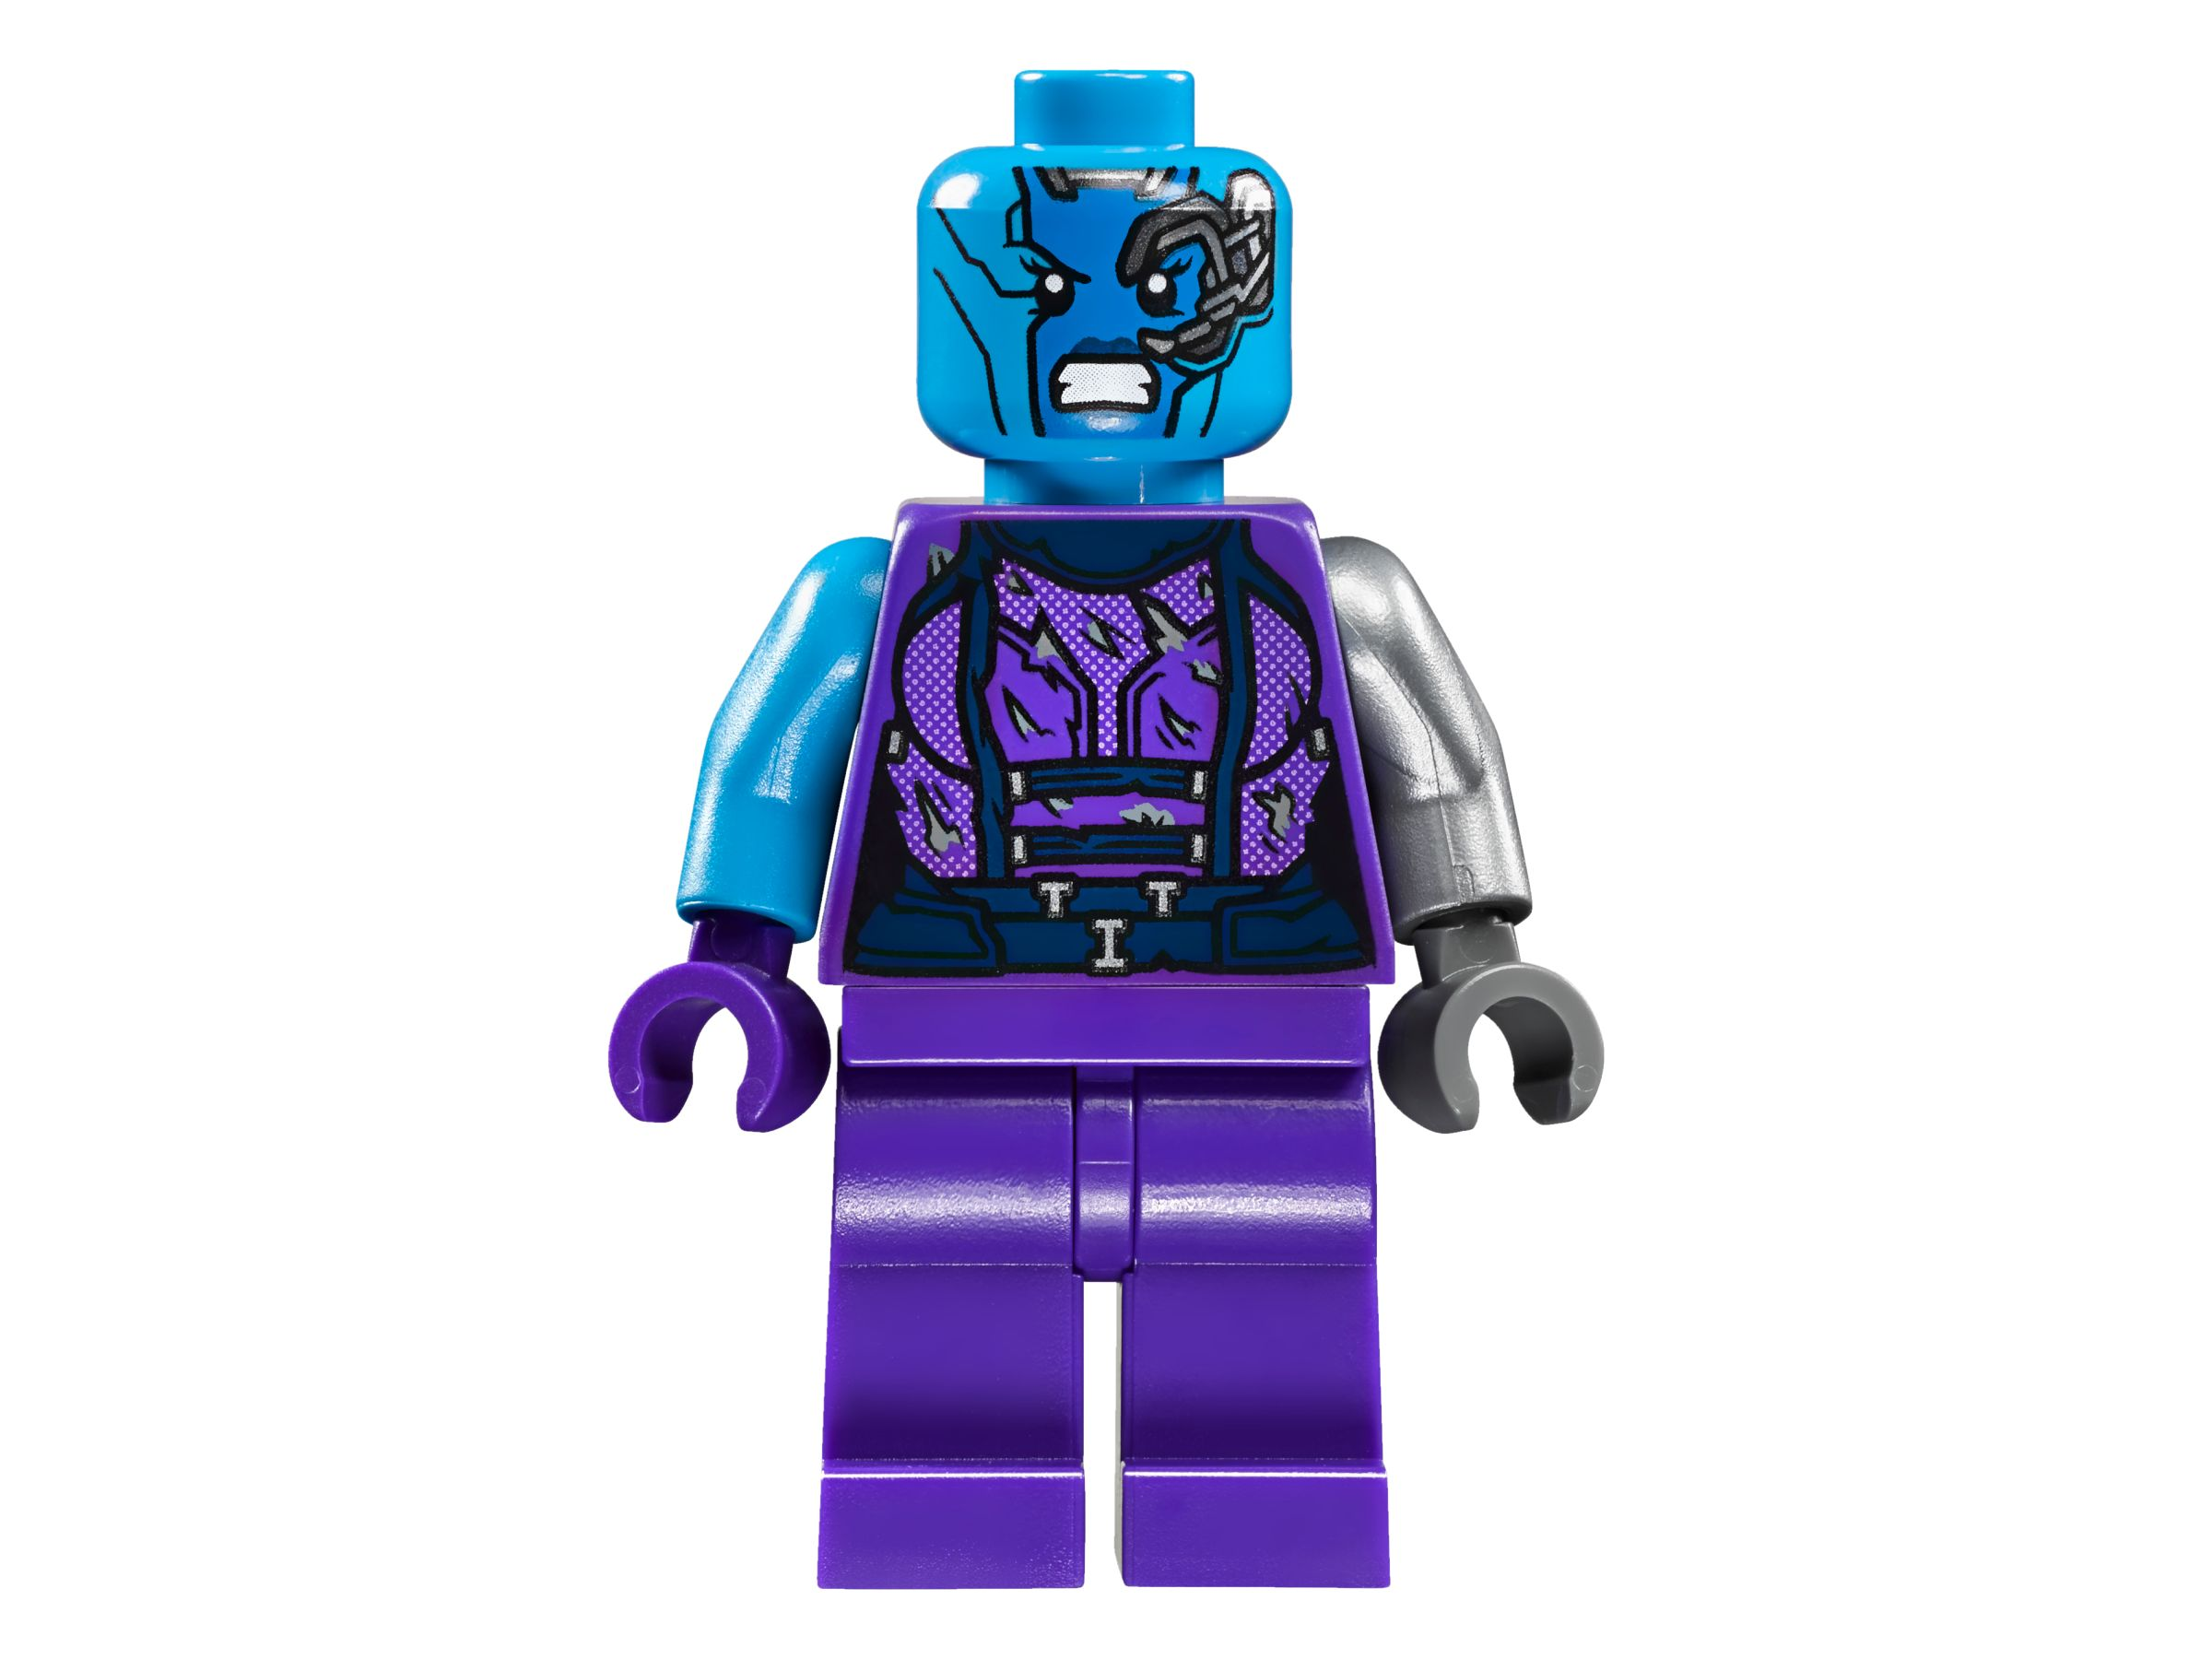 LEGO Super Heroes 76081 Guardians of the Galaxy - The Milano vs. The Abilisk LEGO_76081_alt7.jpg